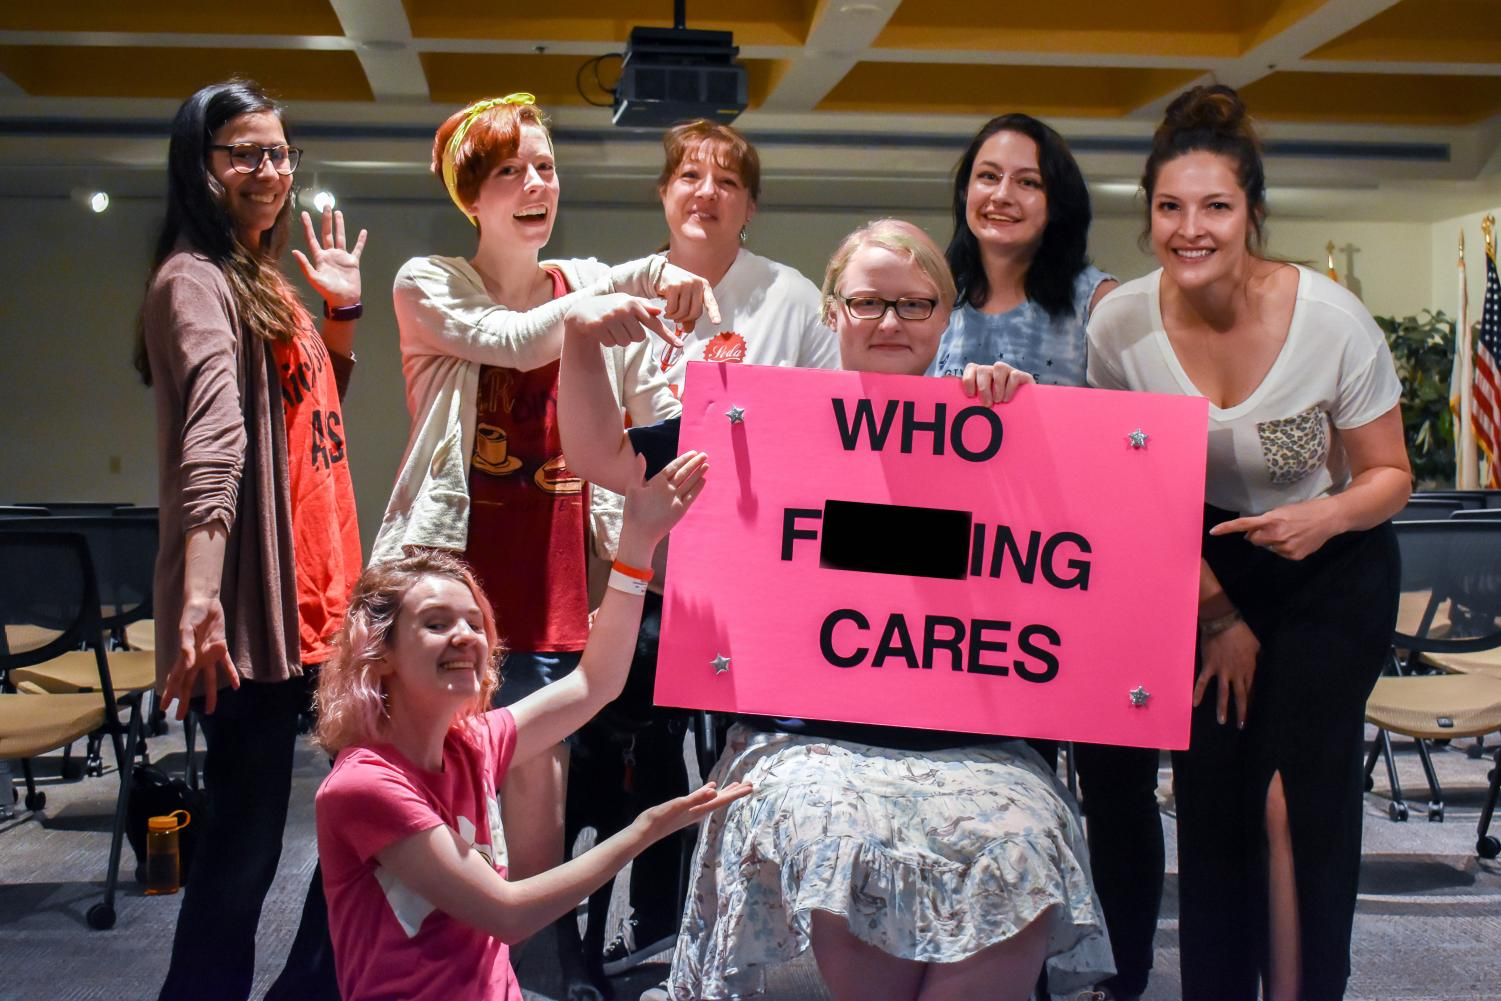 Members of Students Out to Destroy Assumptions—a club that supports students with disabilities—told stories and gave presentations on their lives with disabilities.